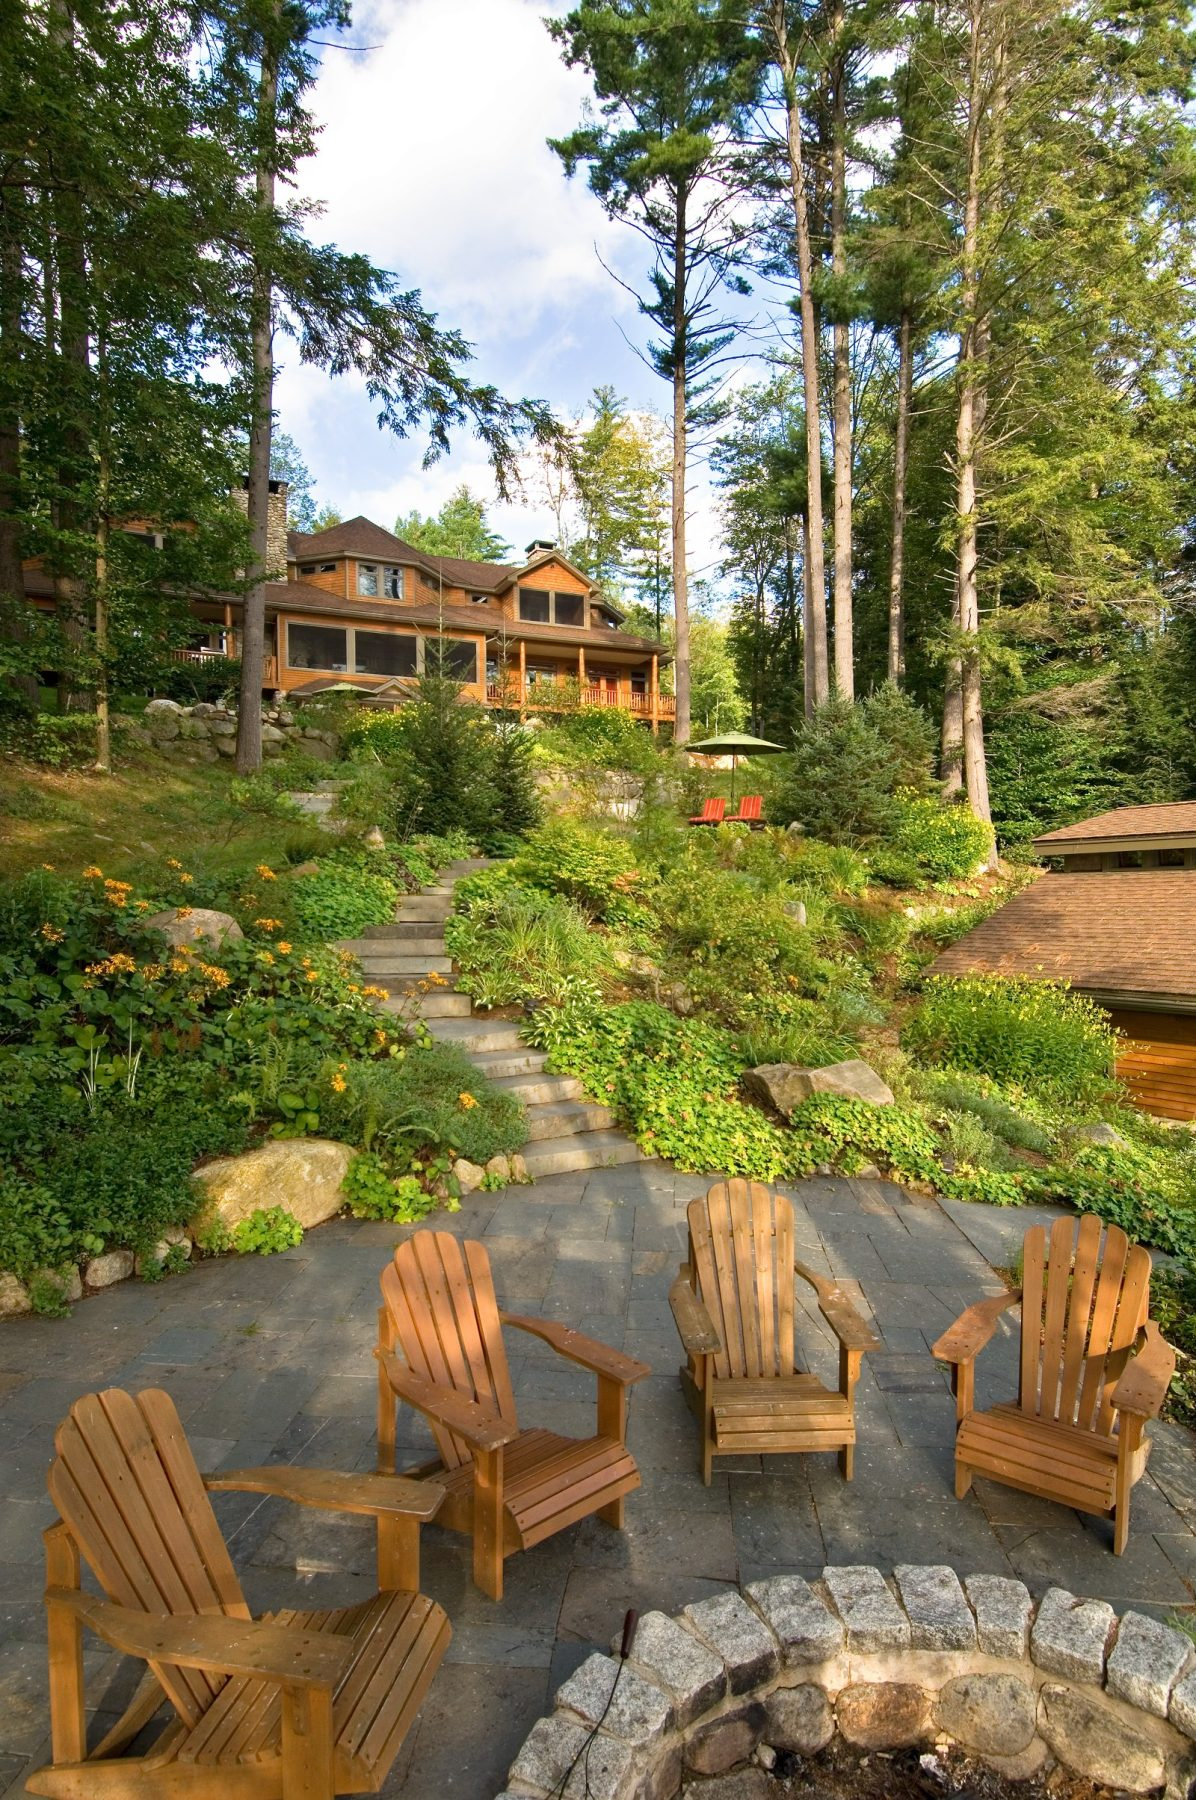 Walkway to fire pit with Adirondack Chairs